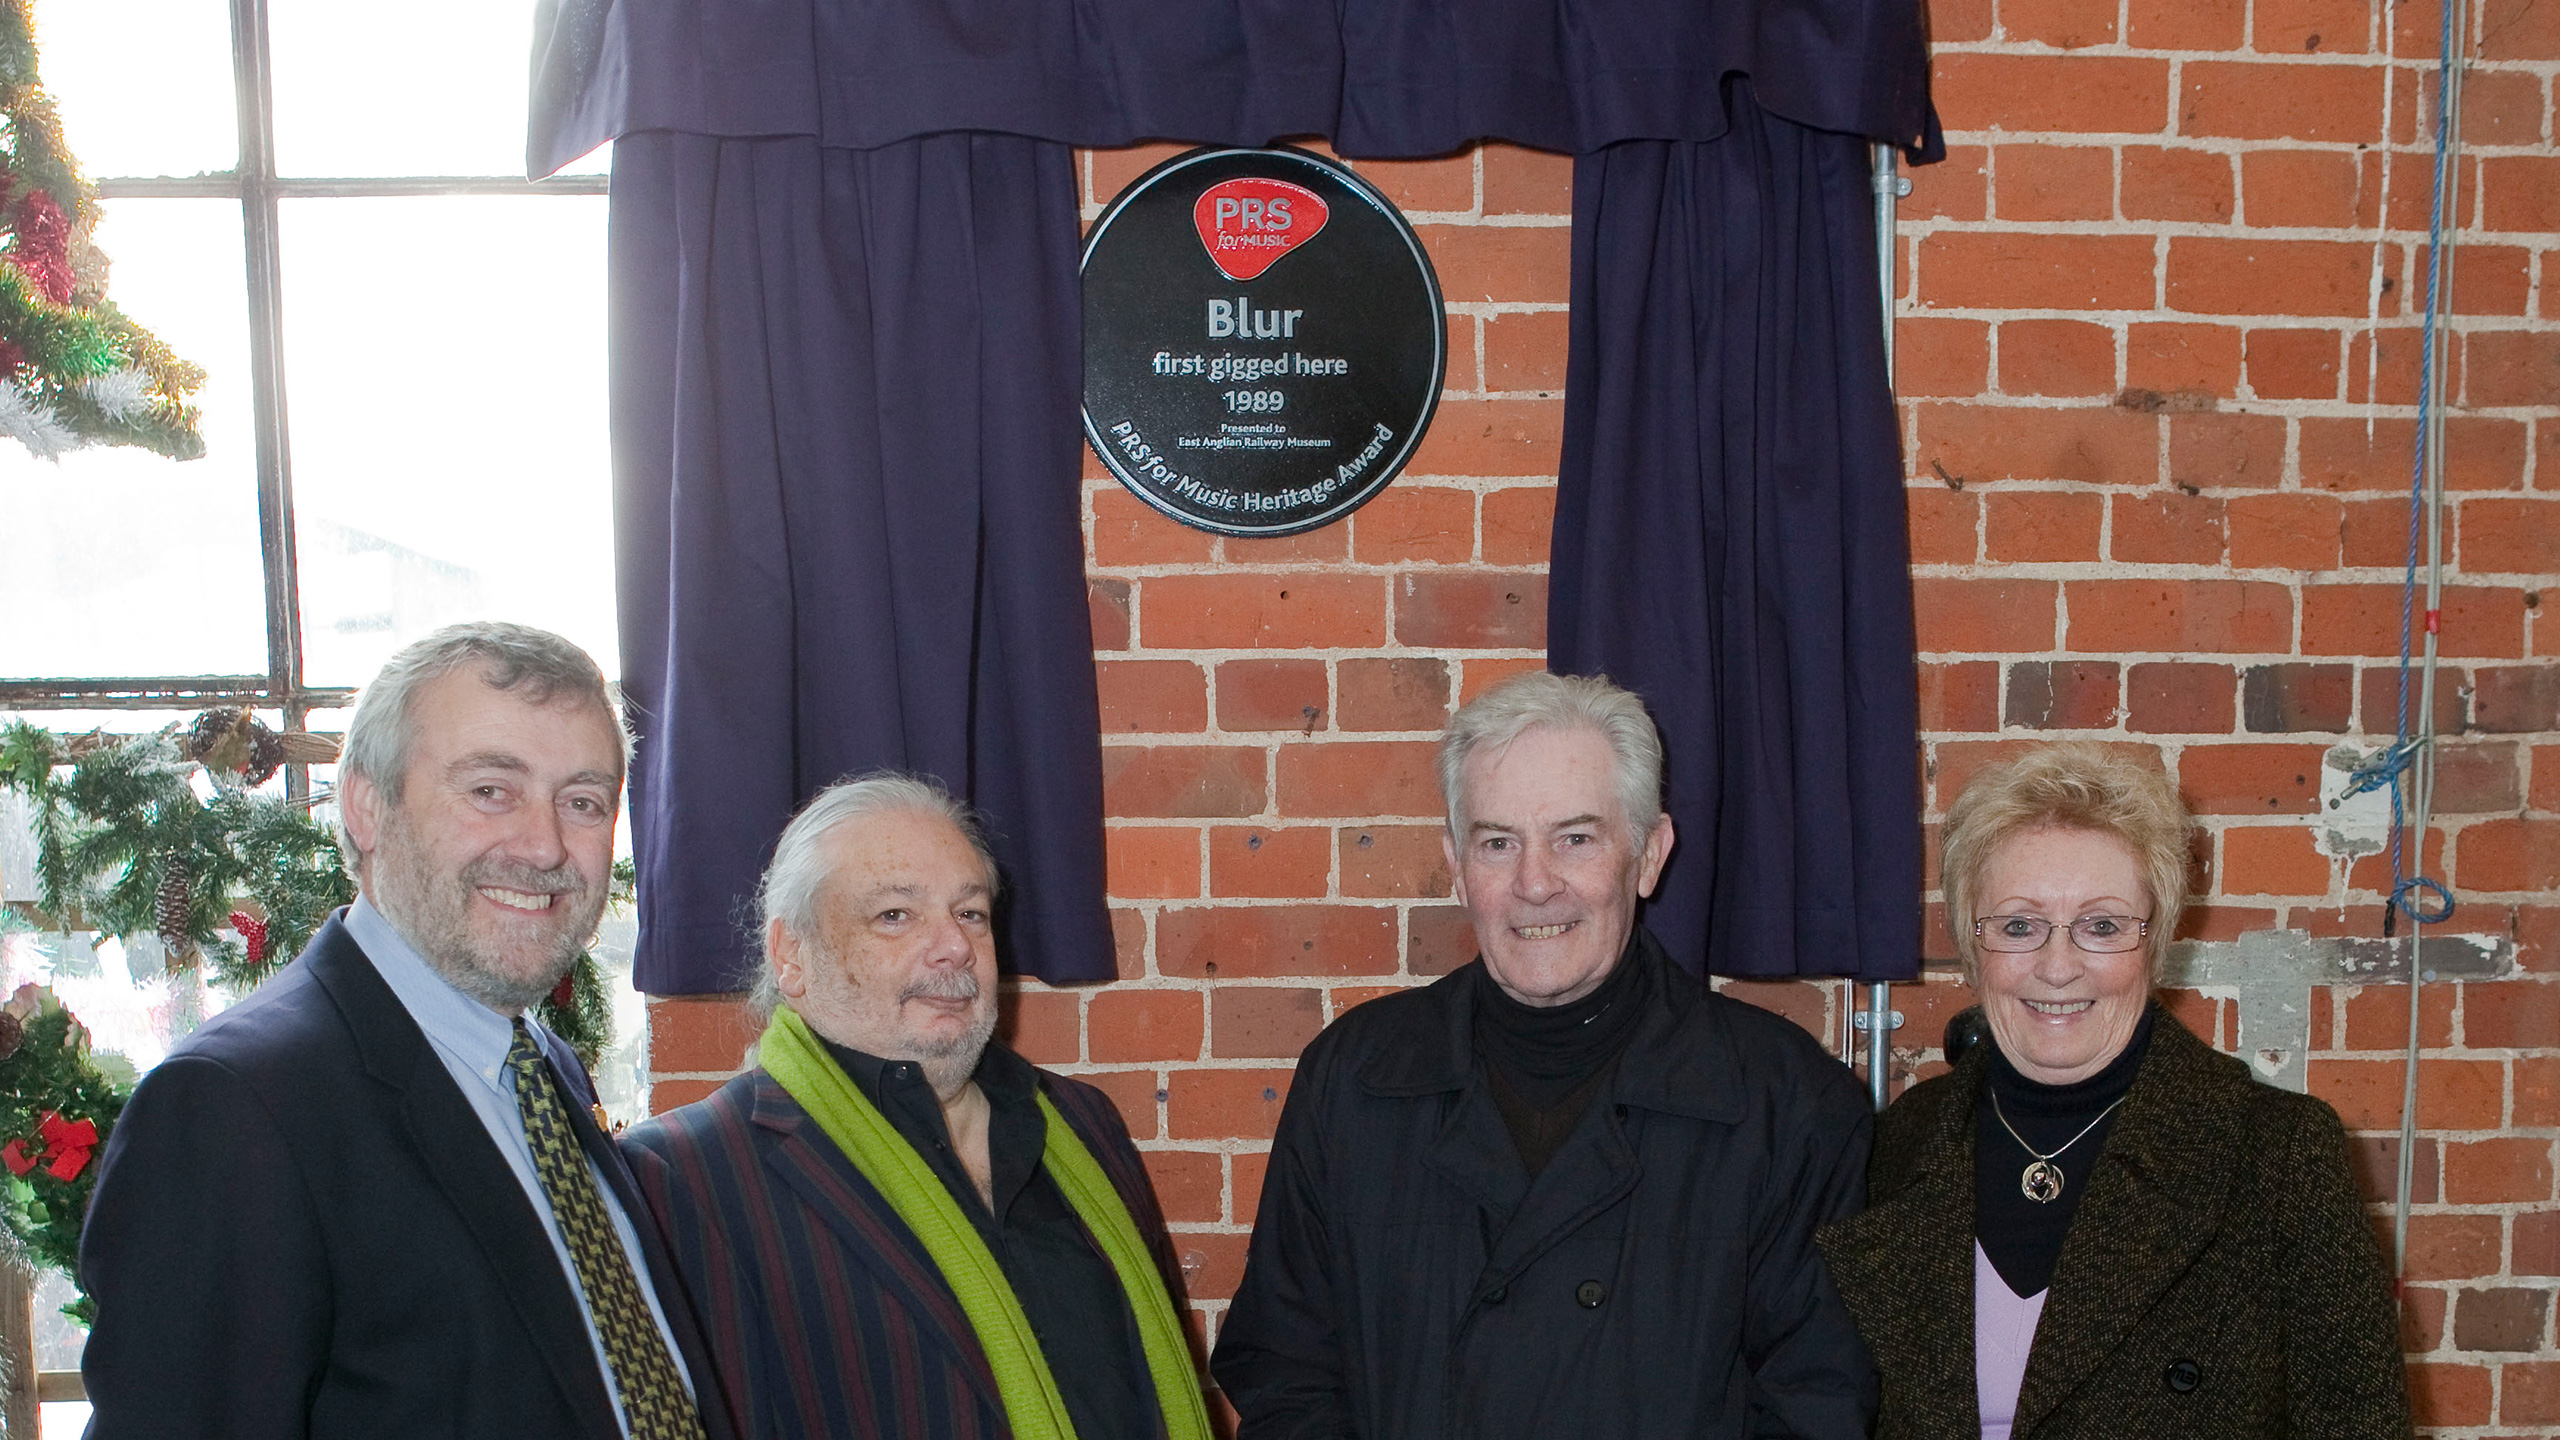 Staff from Good Sheds at East Anglian Railway Museum with their Heritage Award plaque